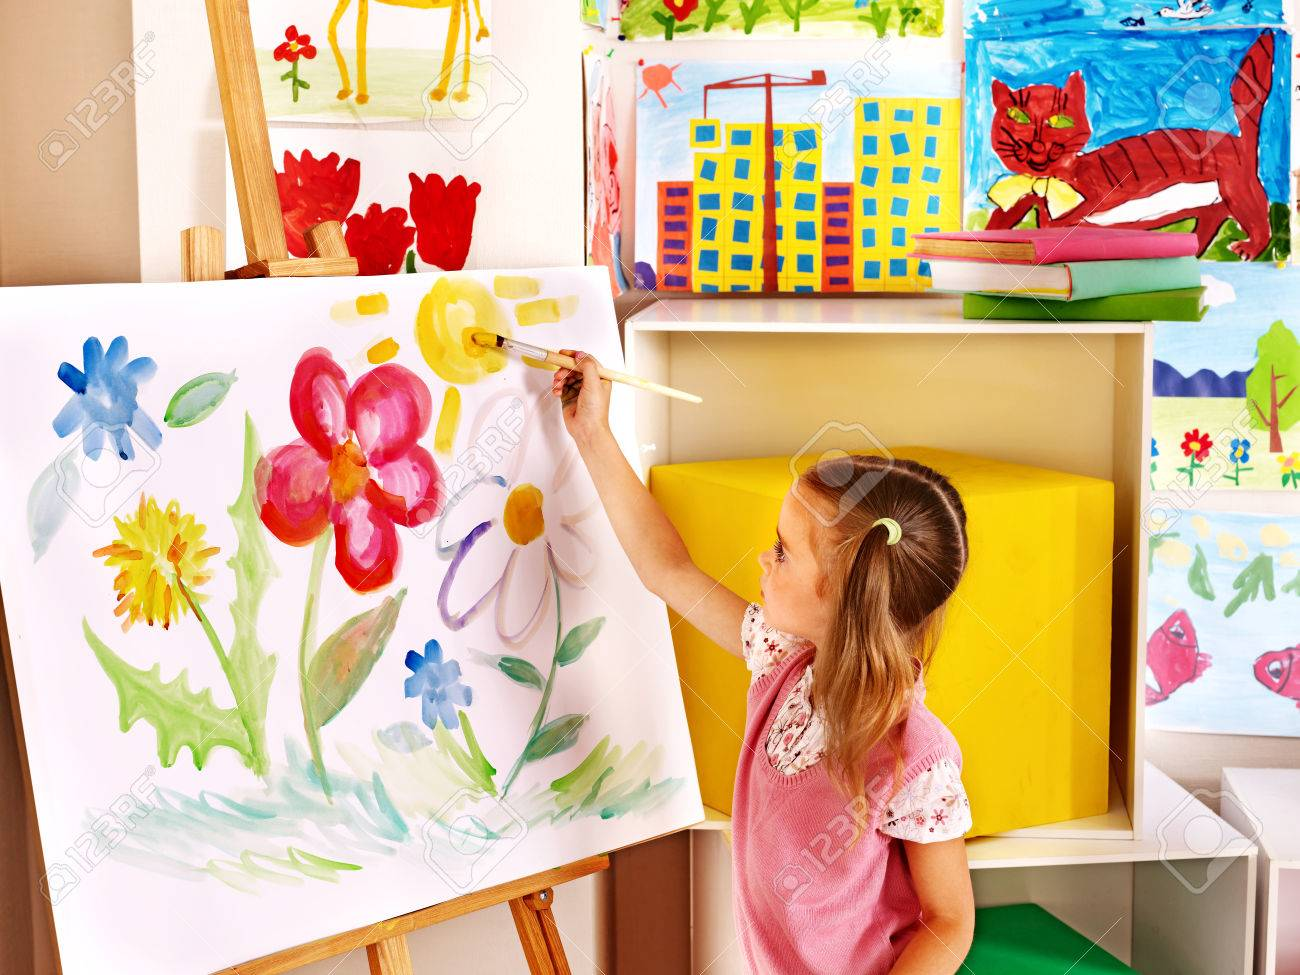 Child painting at easel in art class - 25499215